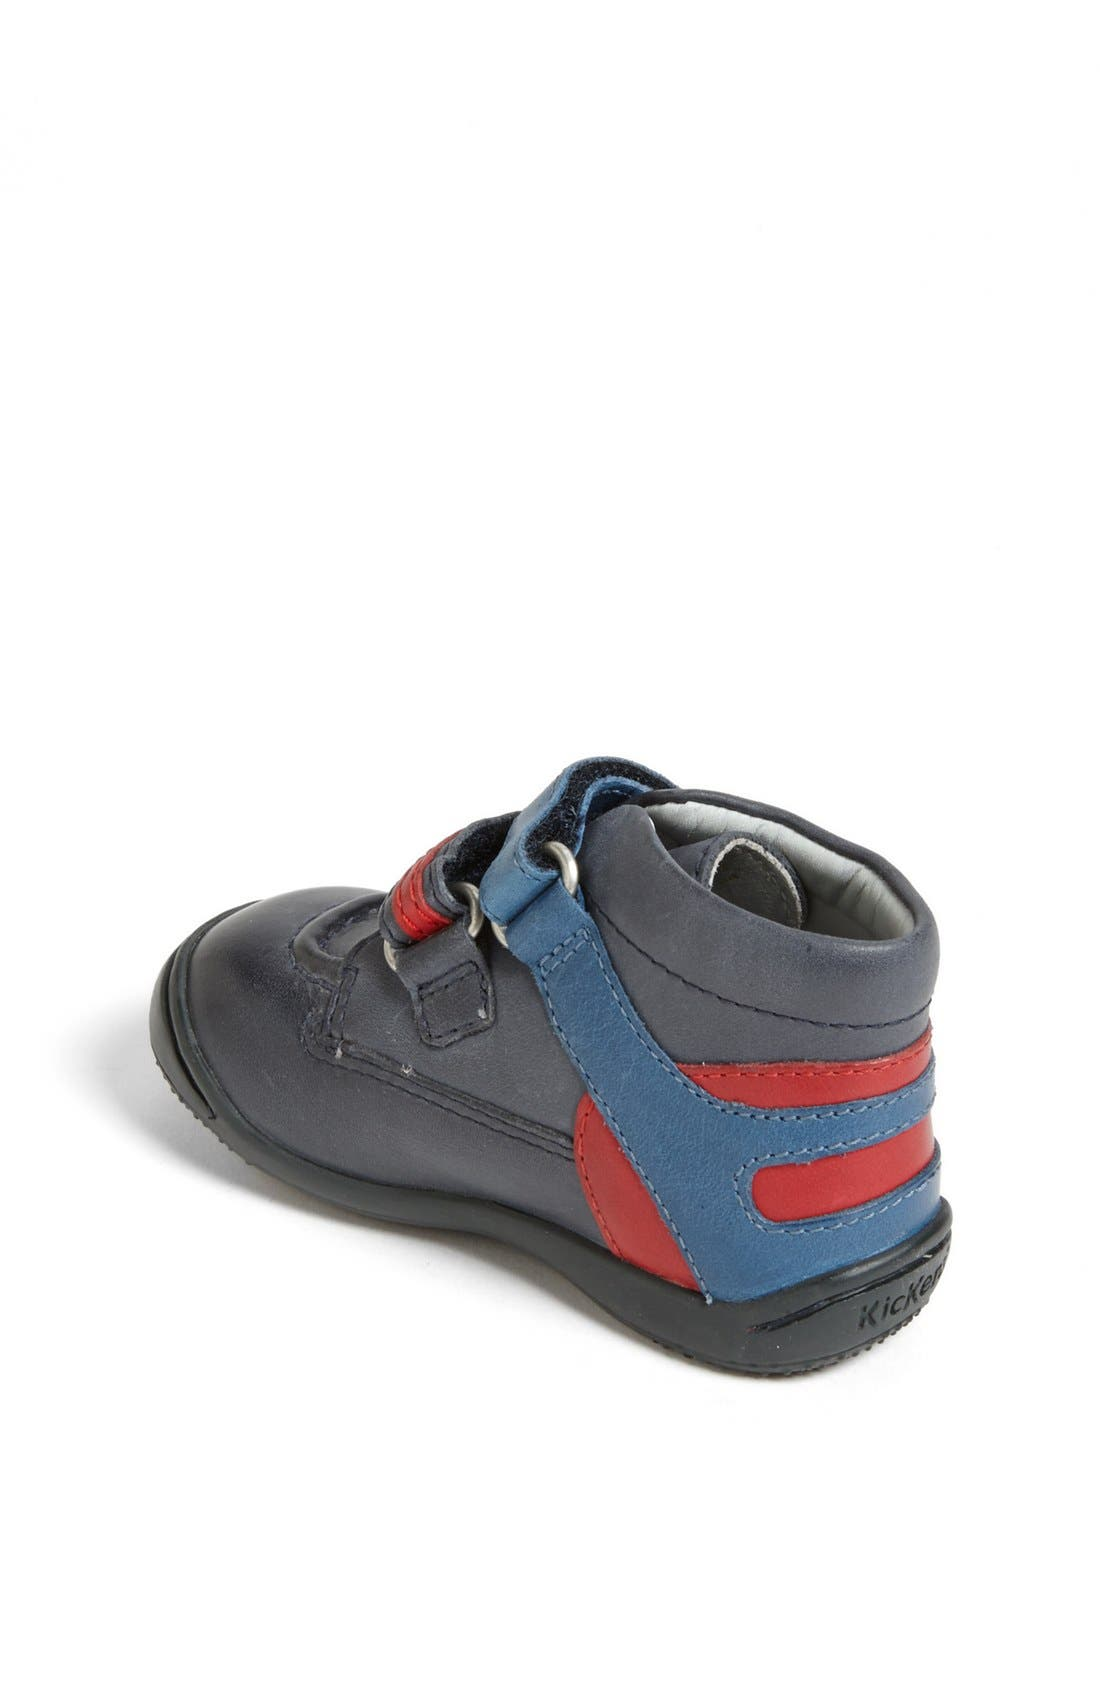 Alternate Image 2  - Kickers 'Geneva' Boot (Baby, Walker & Toddler)